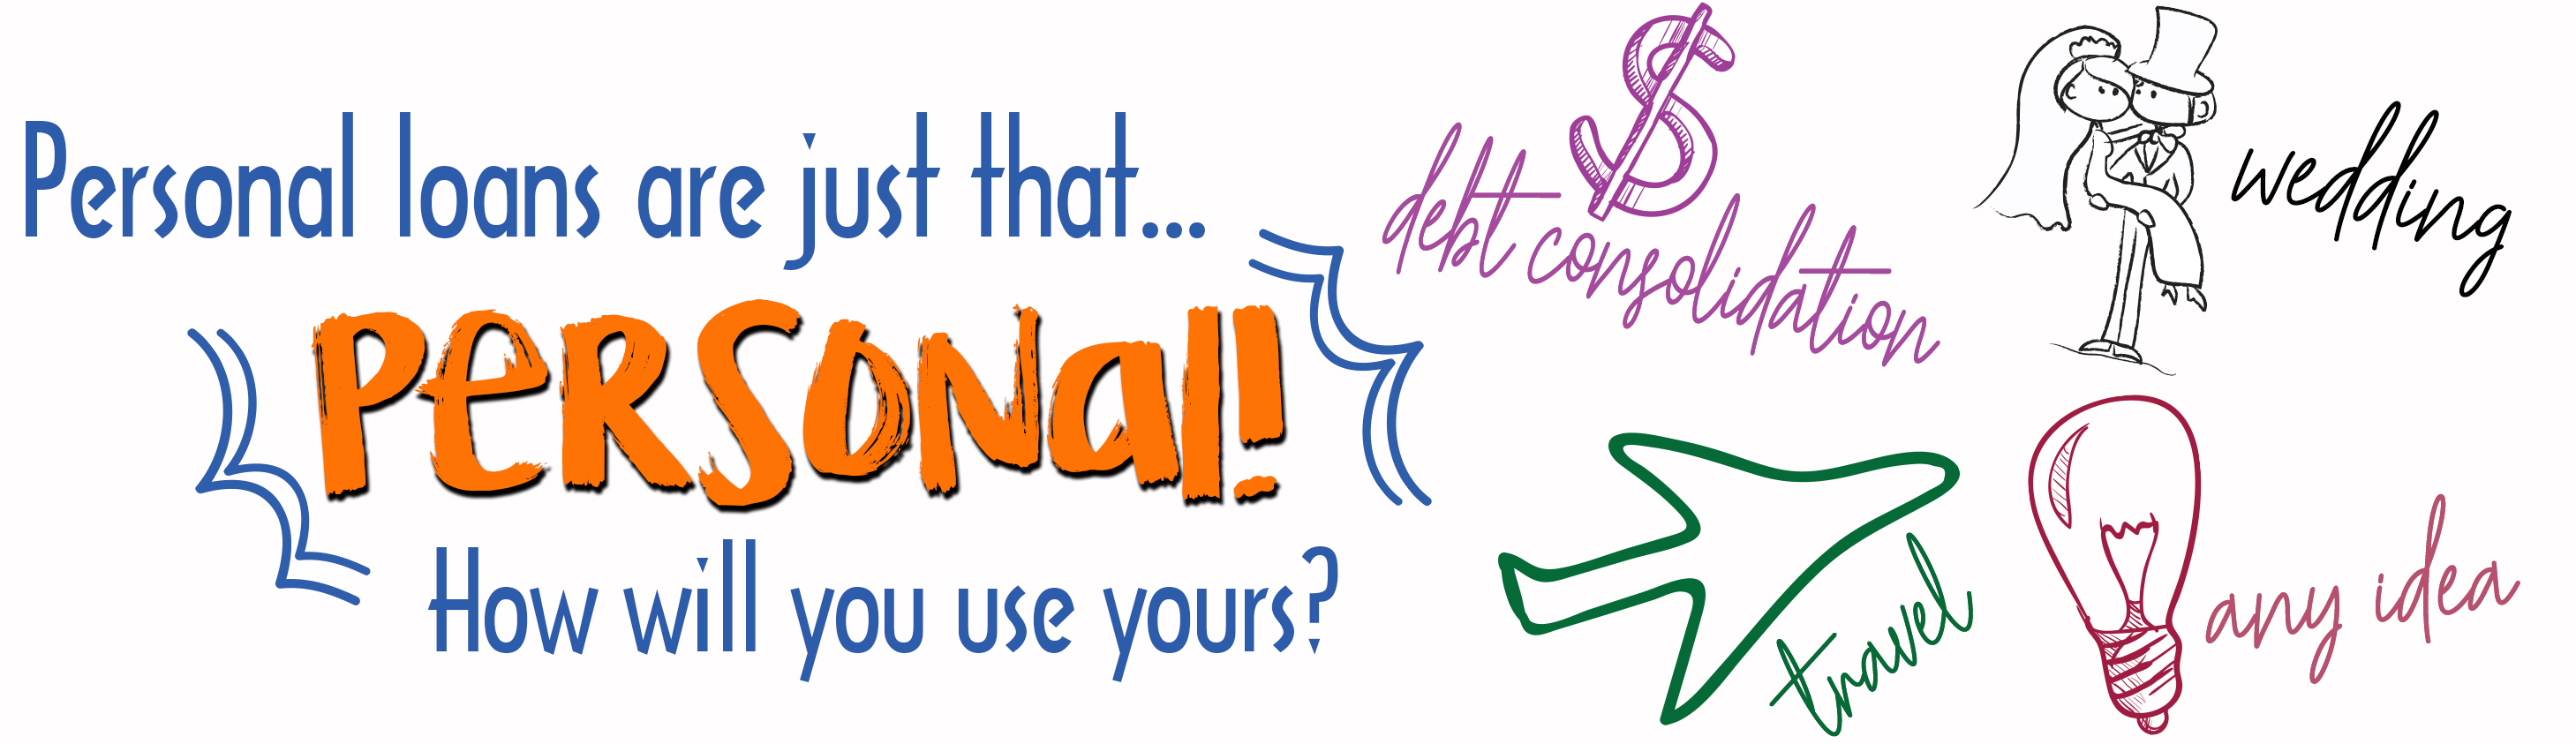 Personal loans are just that... personal! How will you use yours?